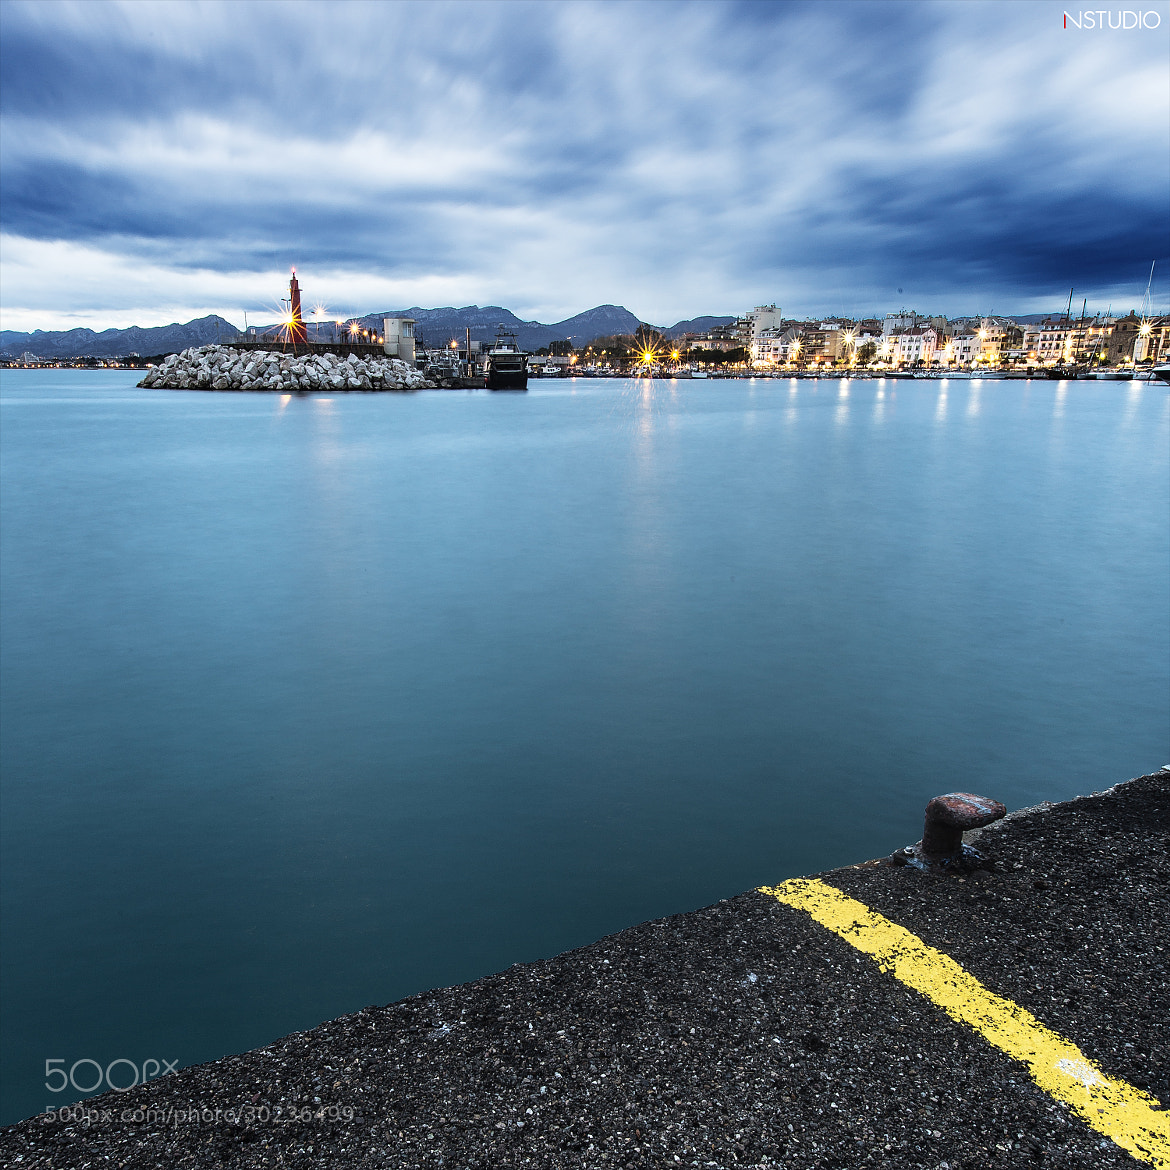 Photograph Cambrils - Harbor - Lighthouse by NSTUDIO PHOTO on 500px